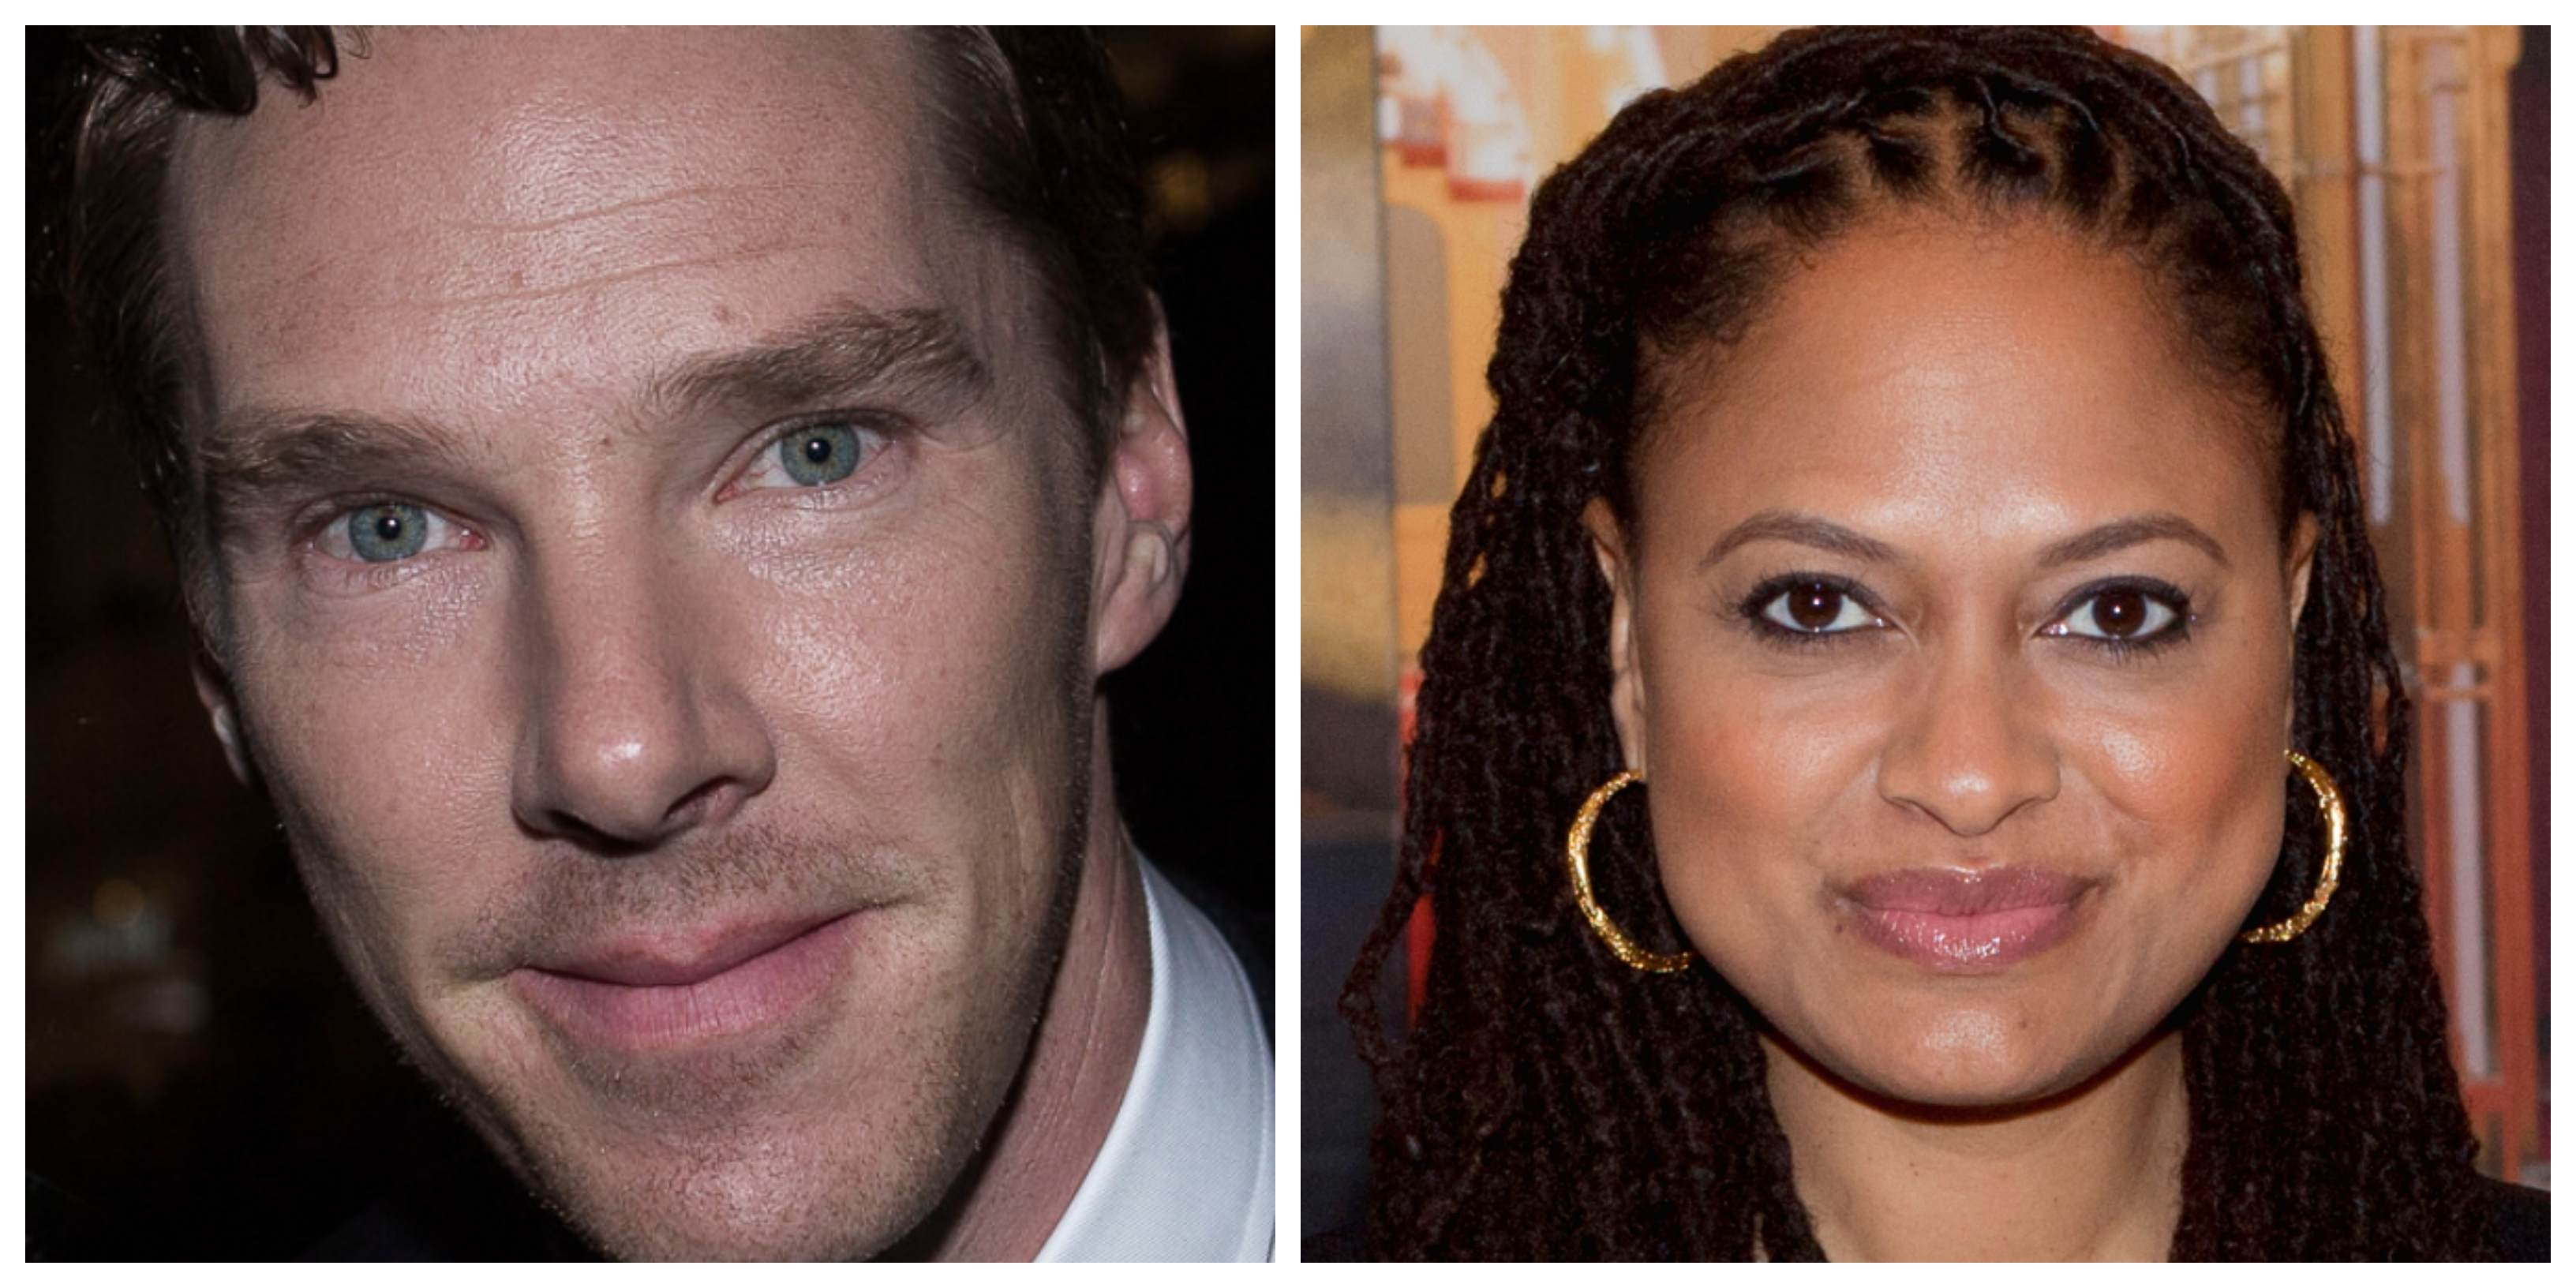 Vegan celebrities Benedict Cumberbatch and Ava DuVernay